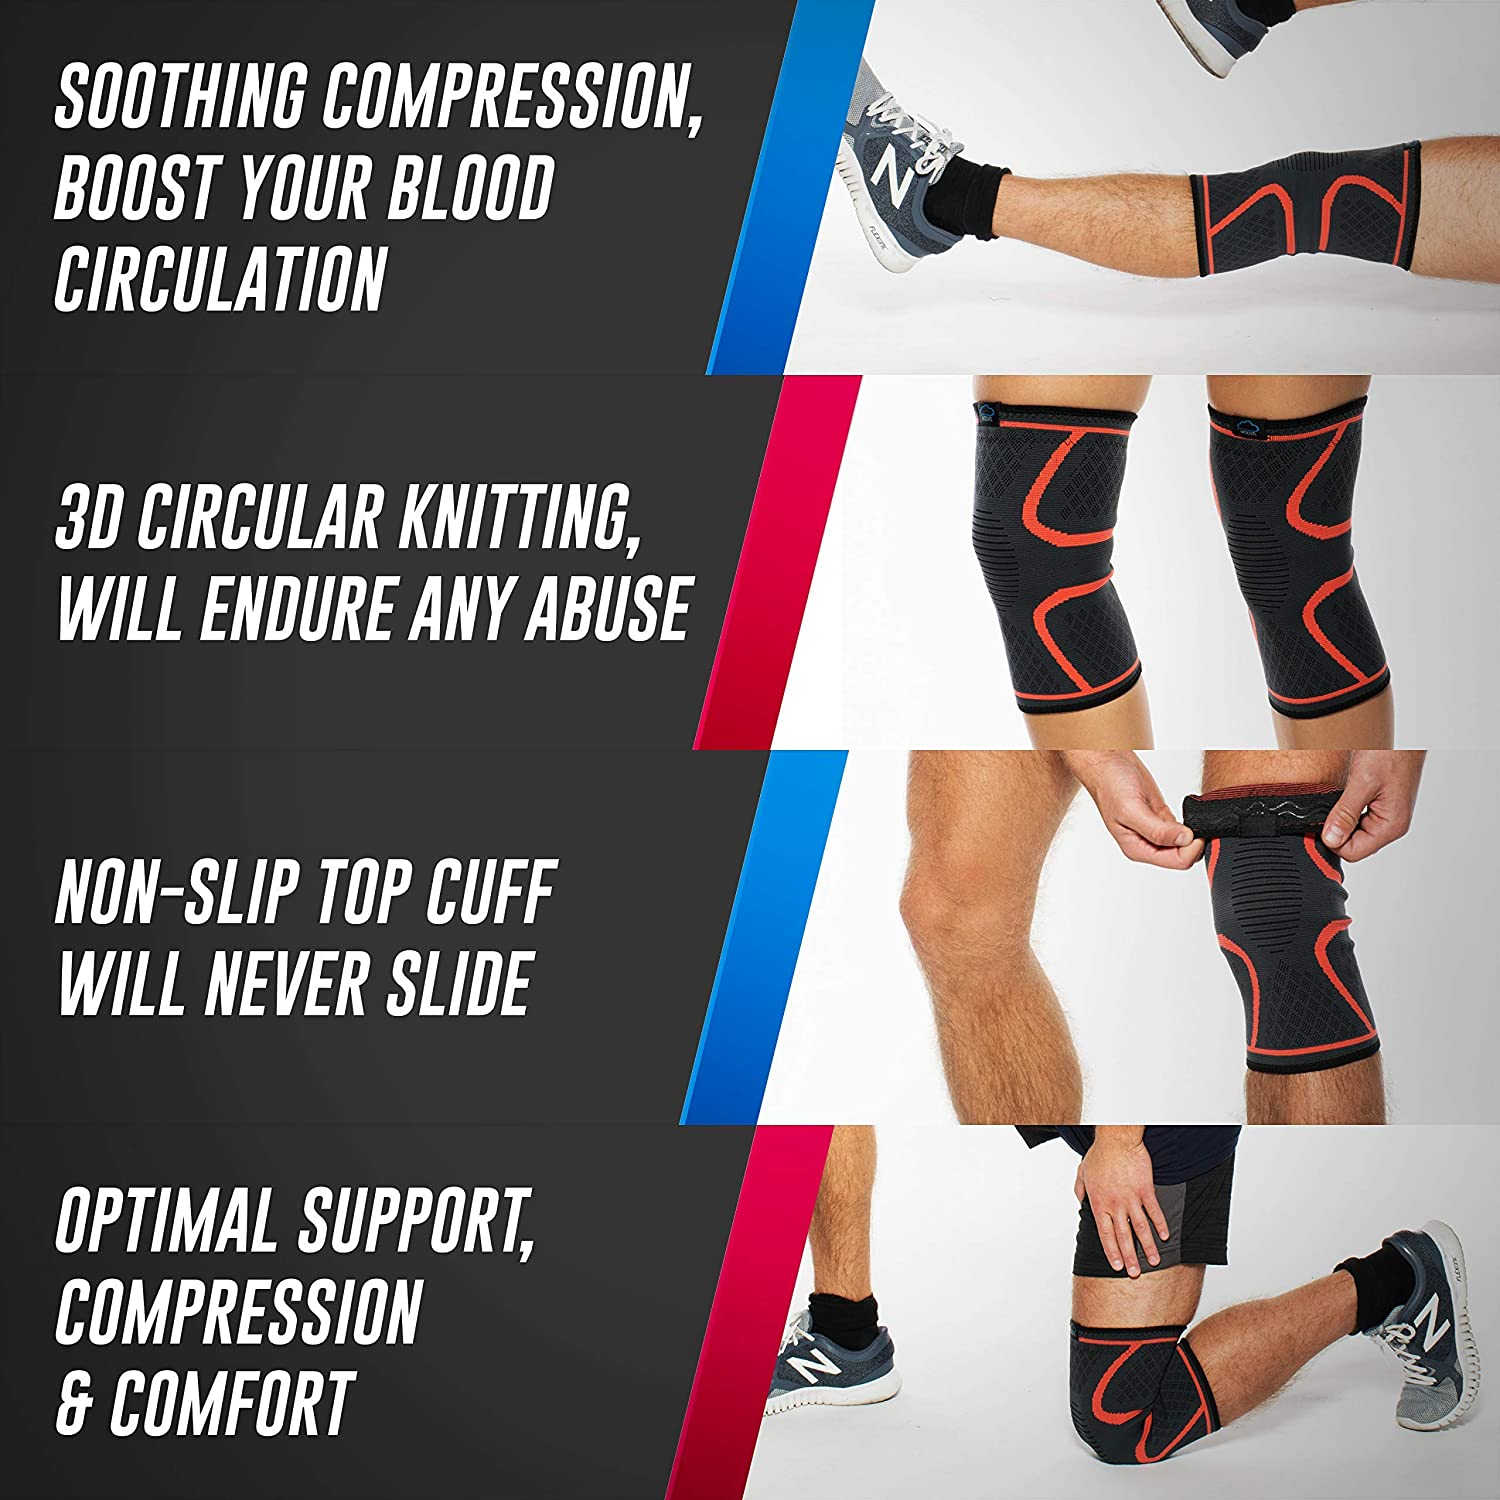 Modvel 2 Pack Knee Compression Sleeve | Knee Brace for Men & Women | Knee Support for Running, Basketball, Weightlifting, Gym, Workout, Sports